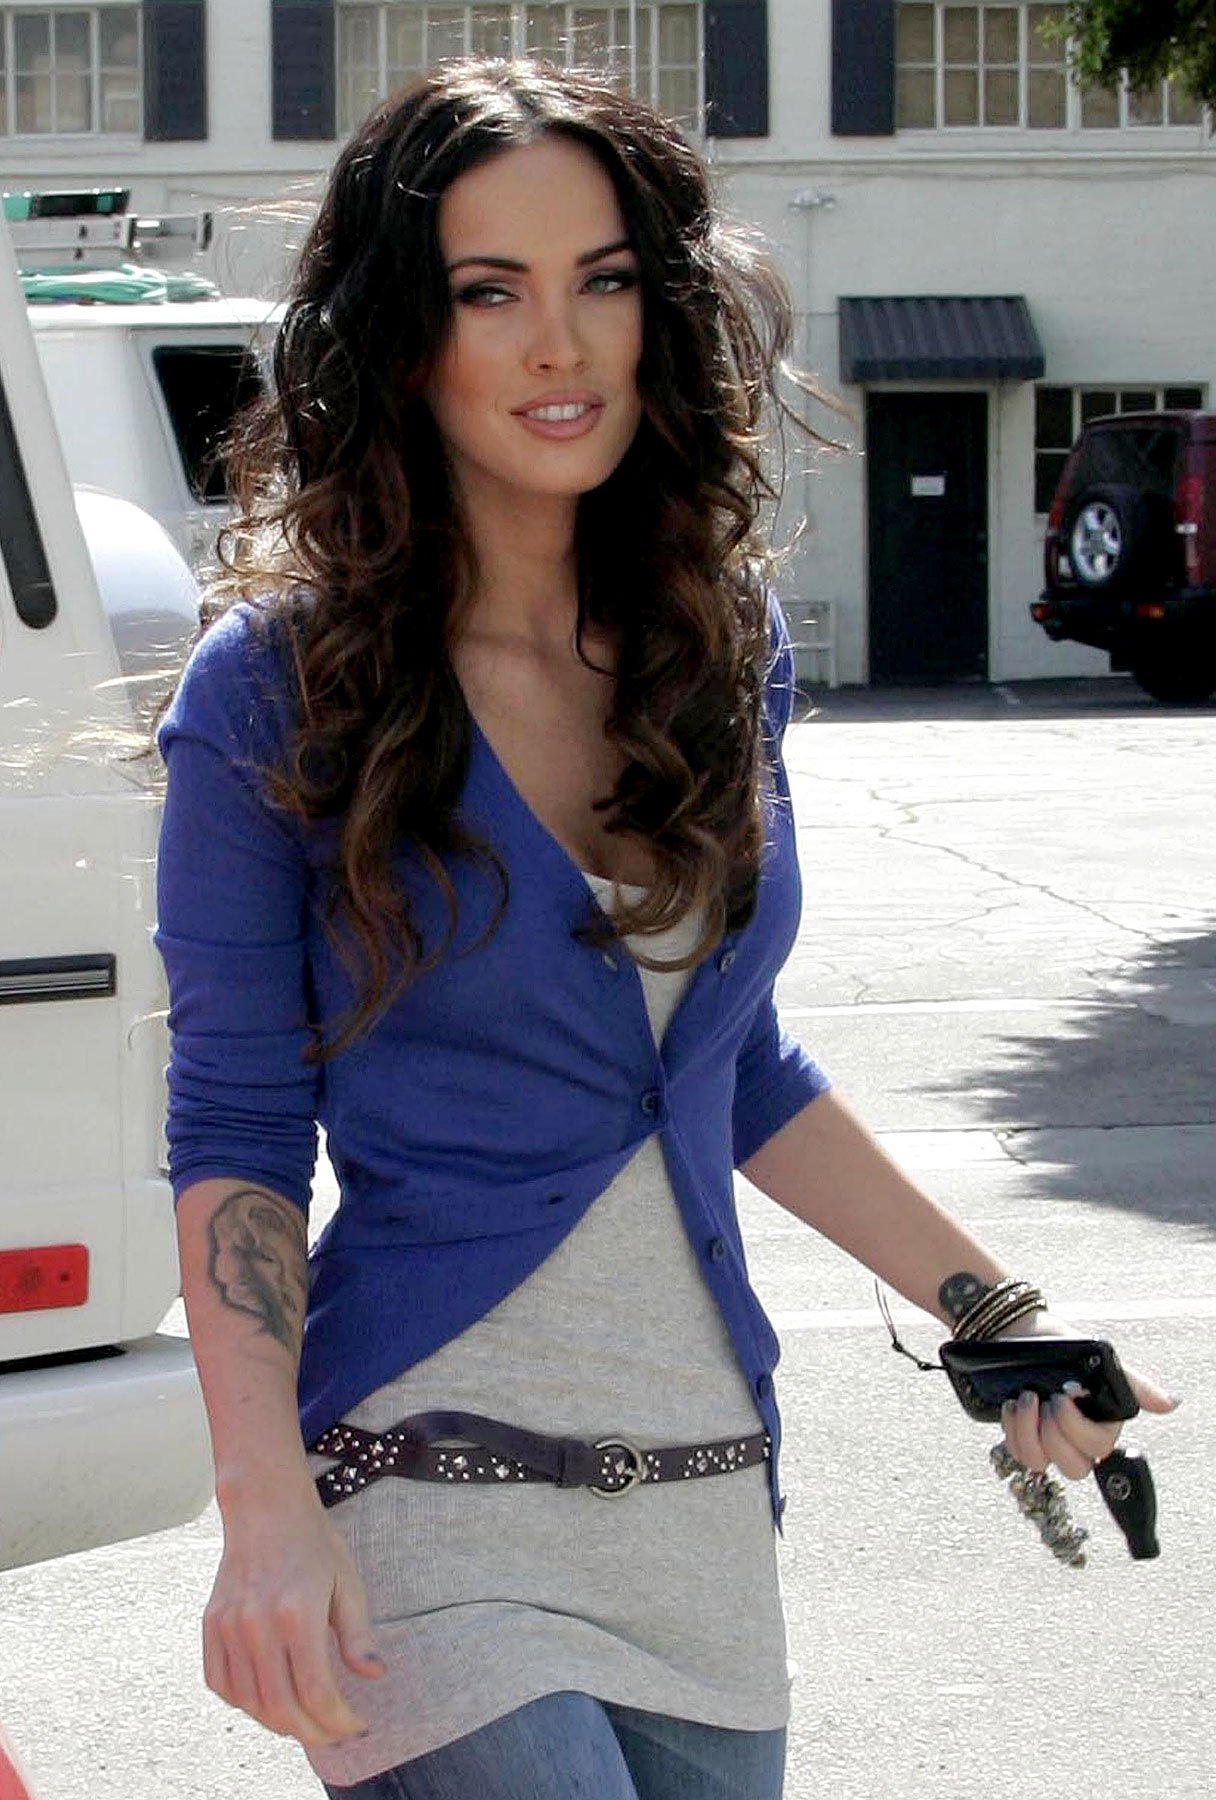 The Lovely Locks of Megan Fox